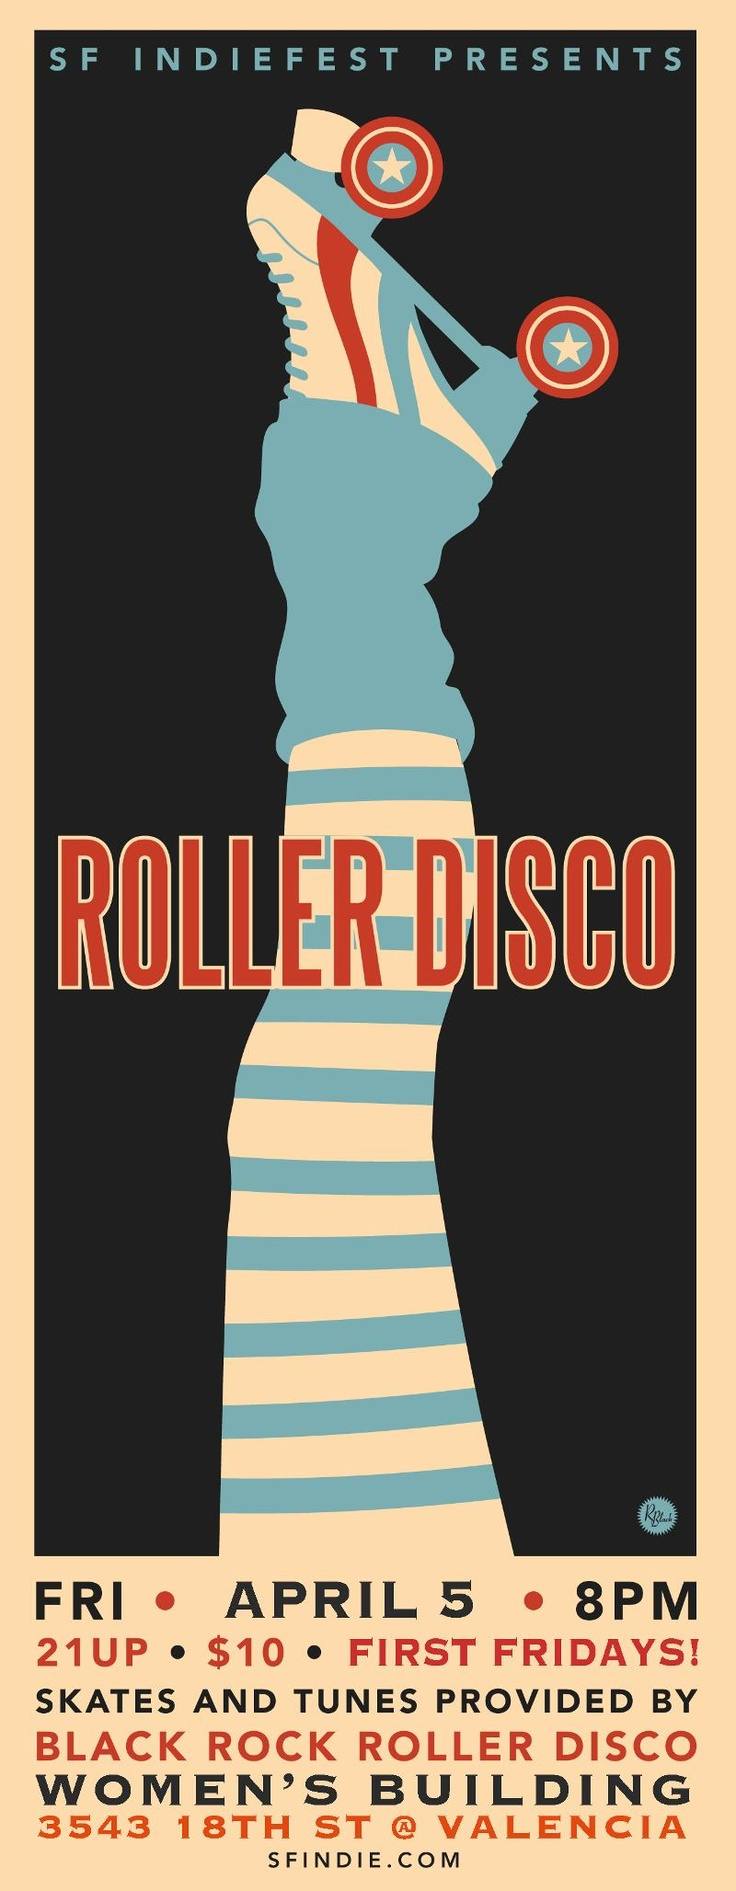 SF Indie Fest Roller Disco Poster